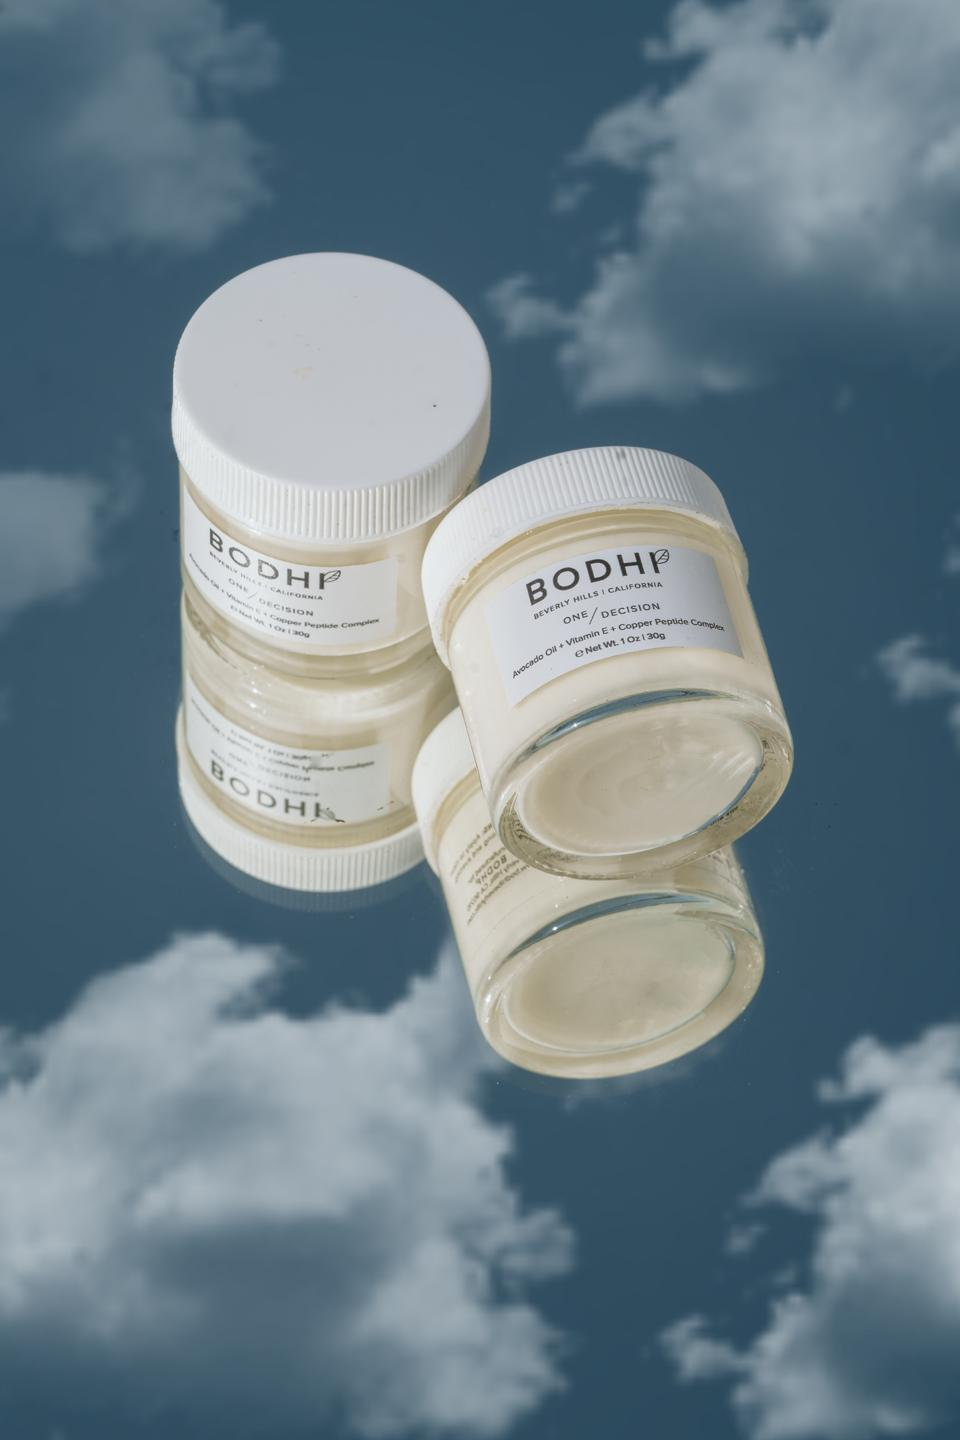 BODHI: Beverly Hills  7:  One/Decision All In One Cream- Designed for all human kind, regardless of gender to cure dry, damaged and dehydrated skin.